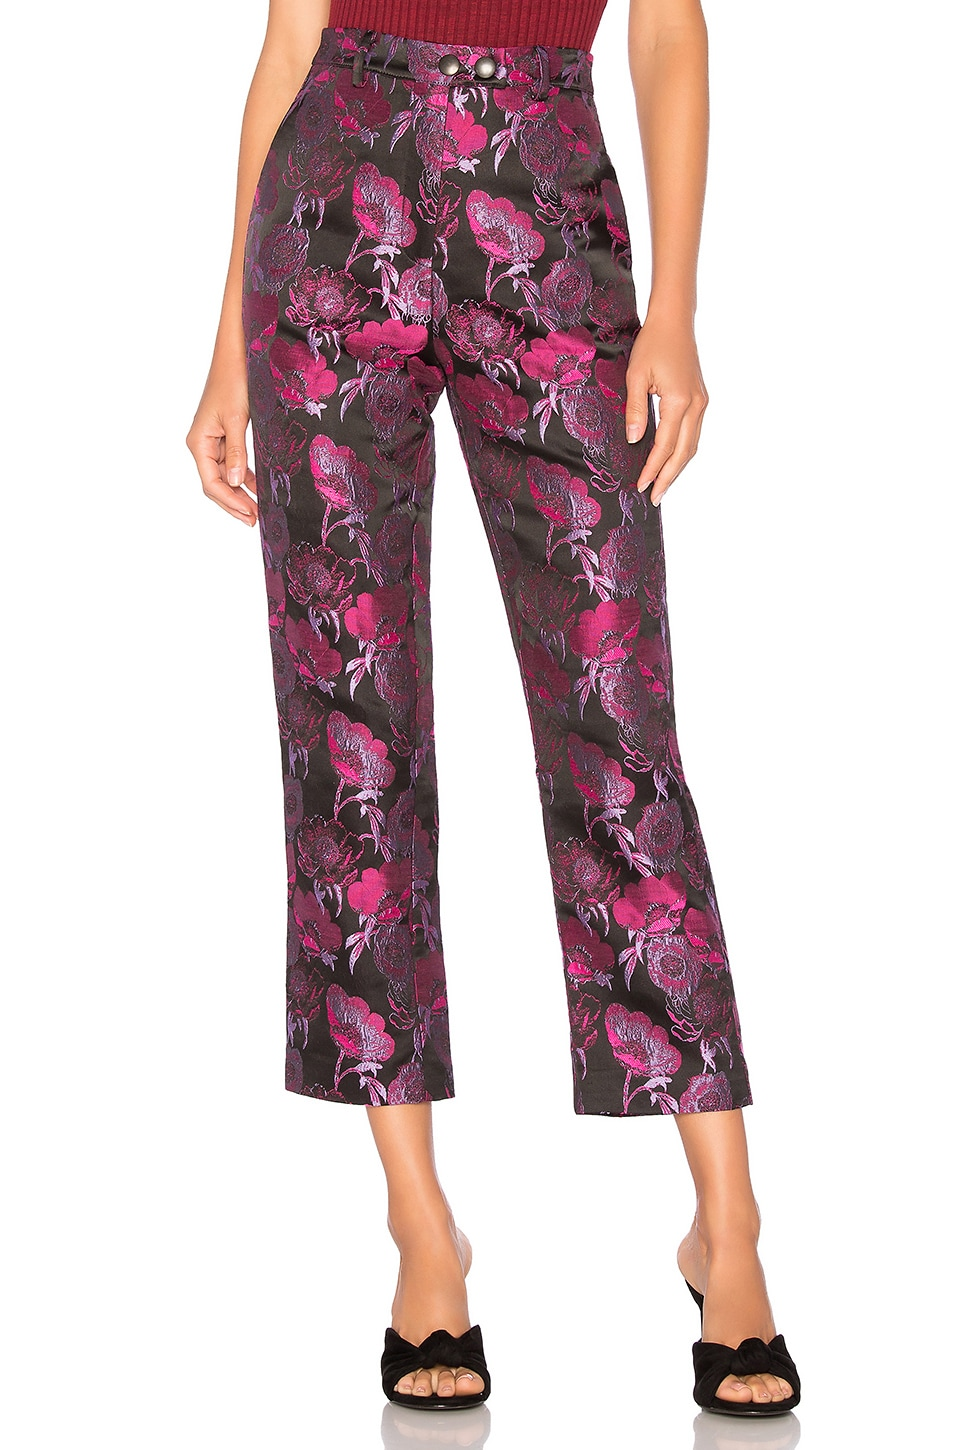 House of Harlow 1960 x REVOLVE Juni Pant in Pink Multi